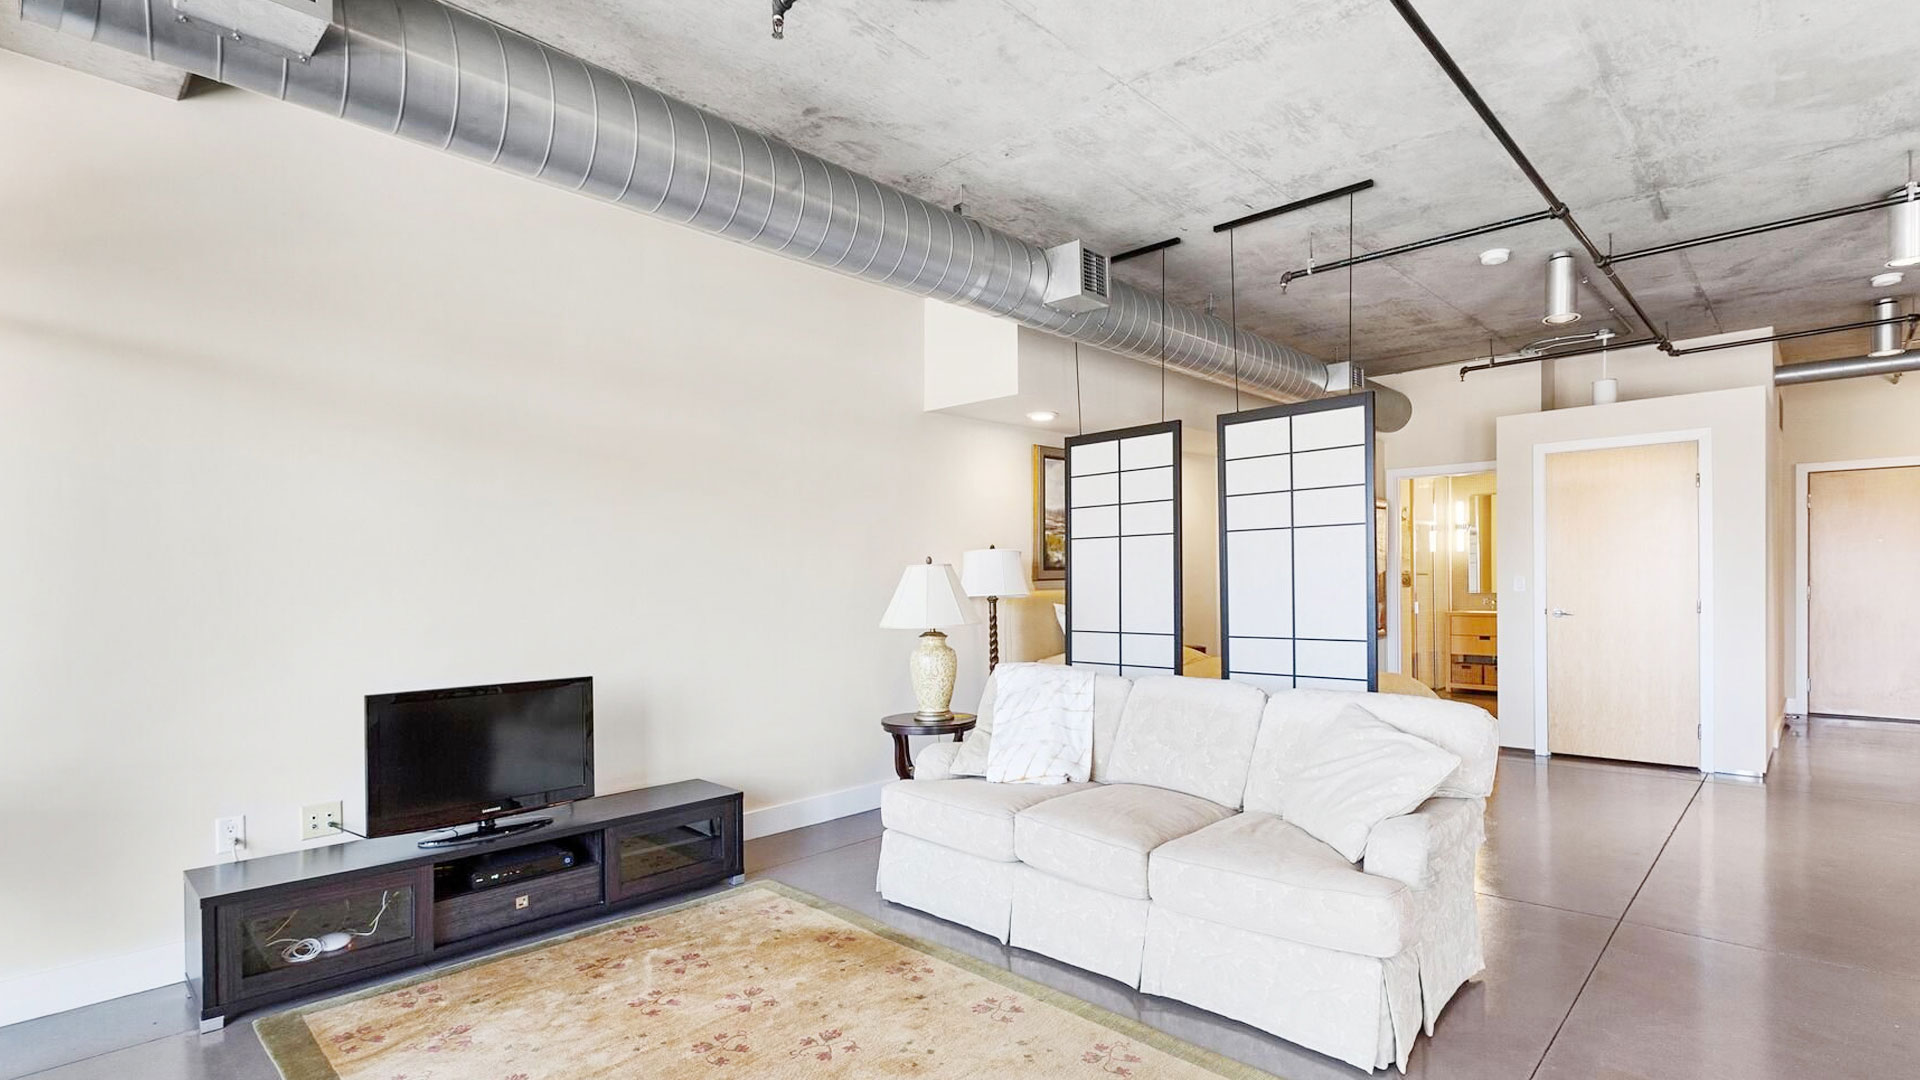 Professional Air Duct Cleaning West Hollywood | S & R Air Duct Cleaning Services